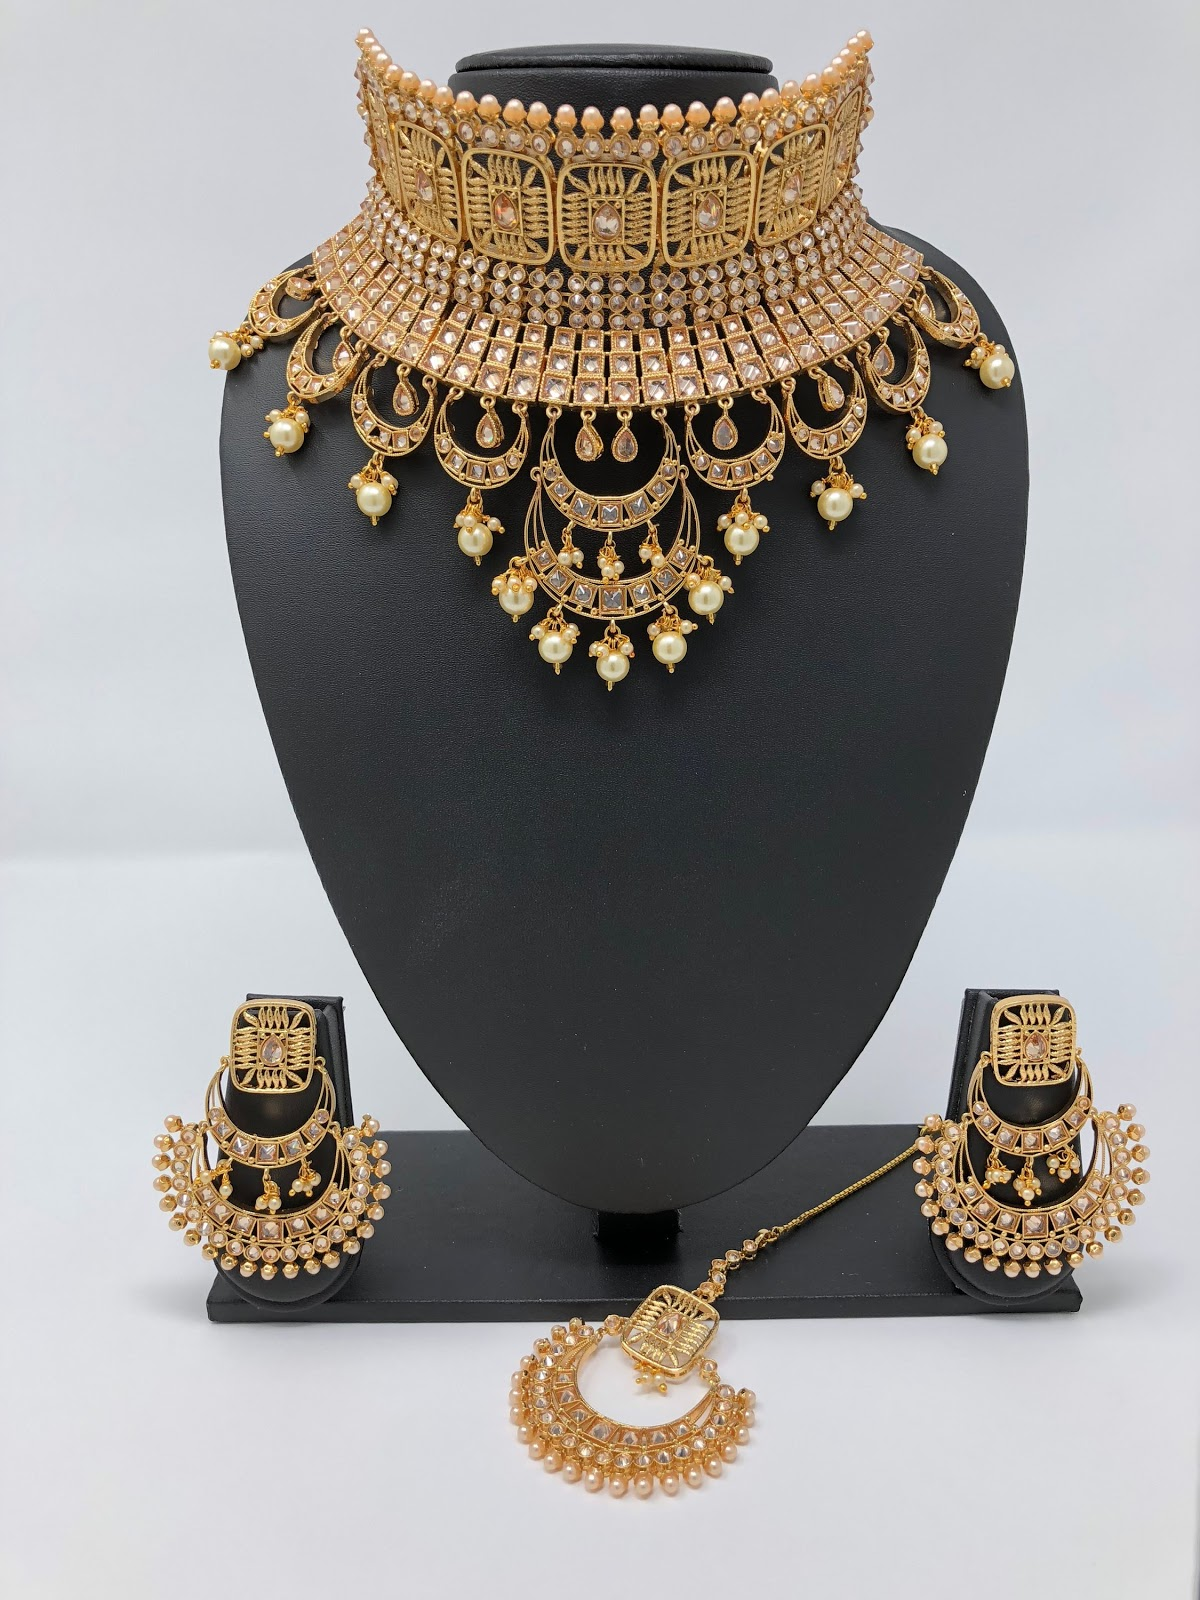 Bridal Jewellery For The Stylish Indian Bride